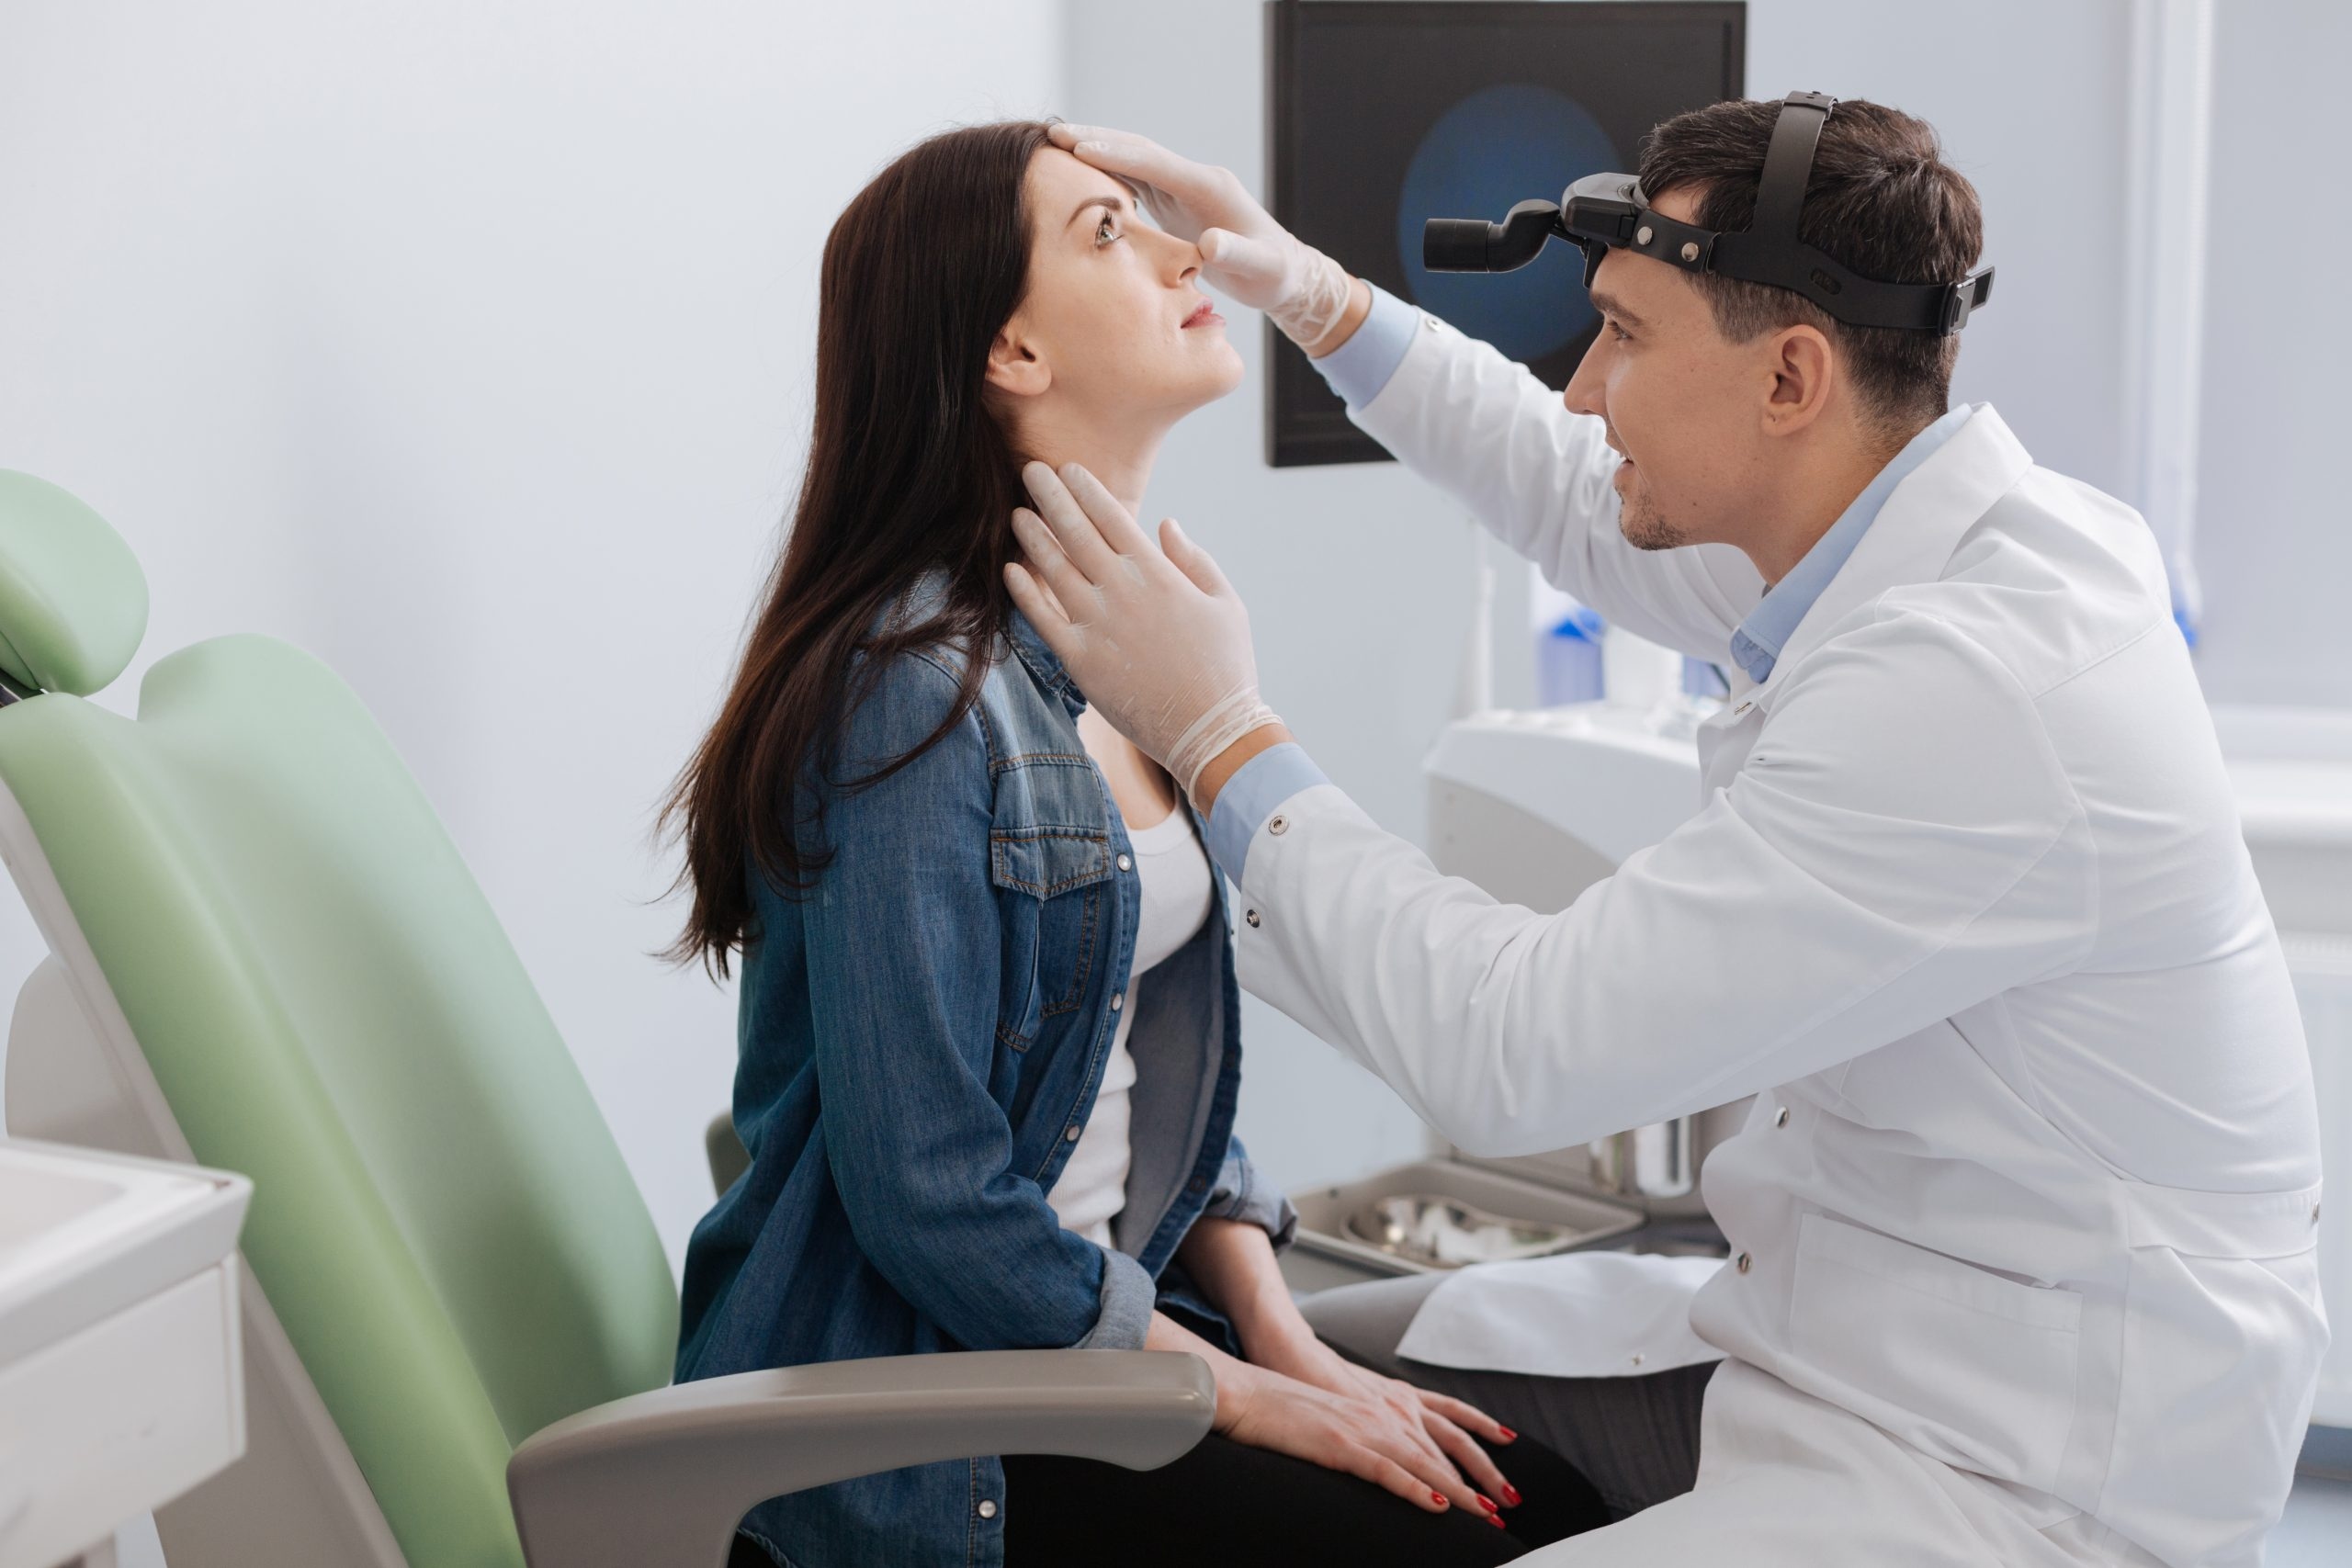 Doctor examining patient's nose